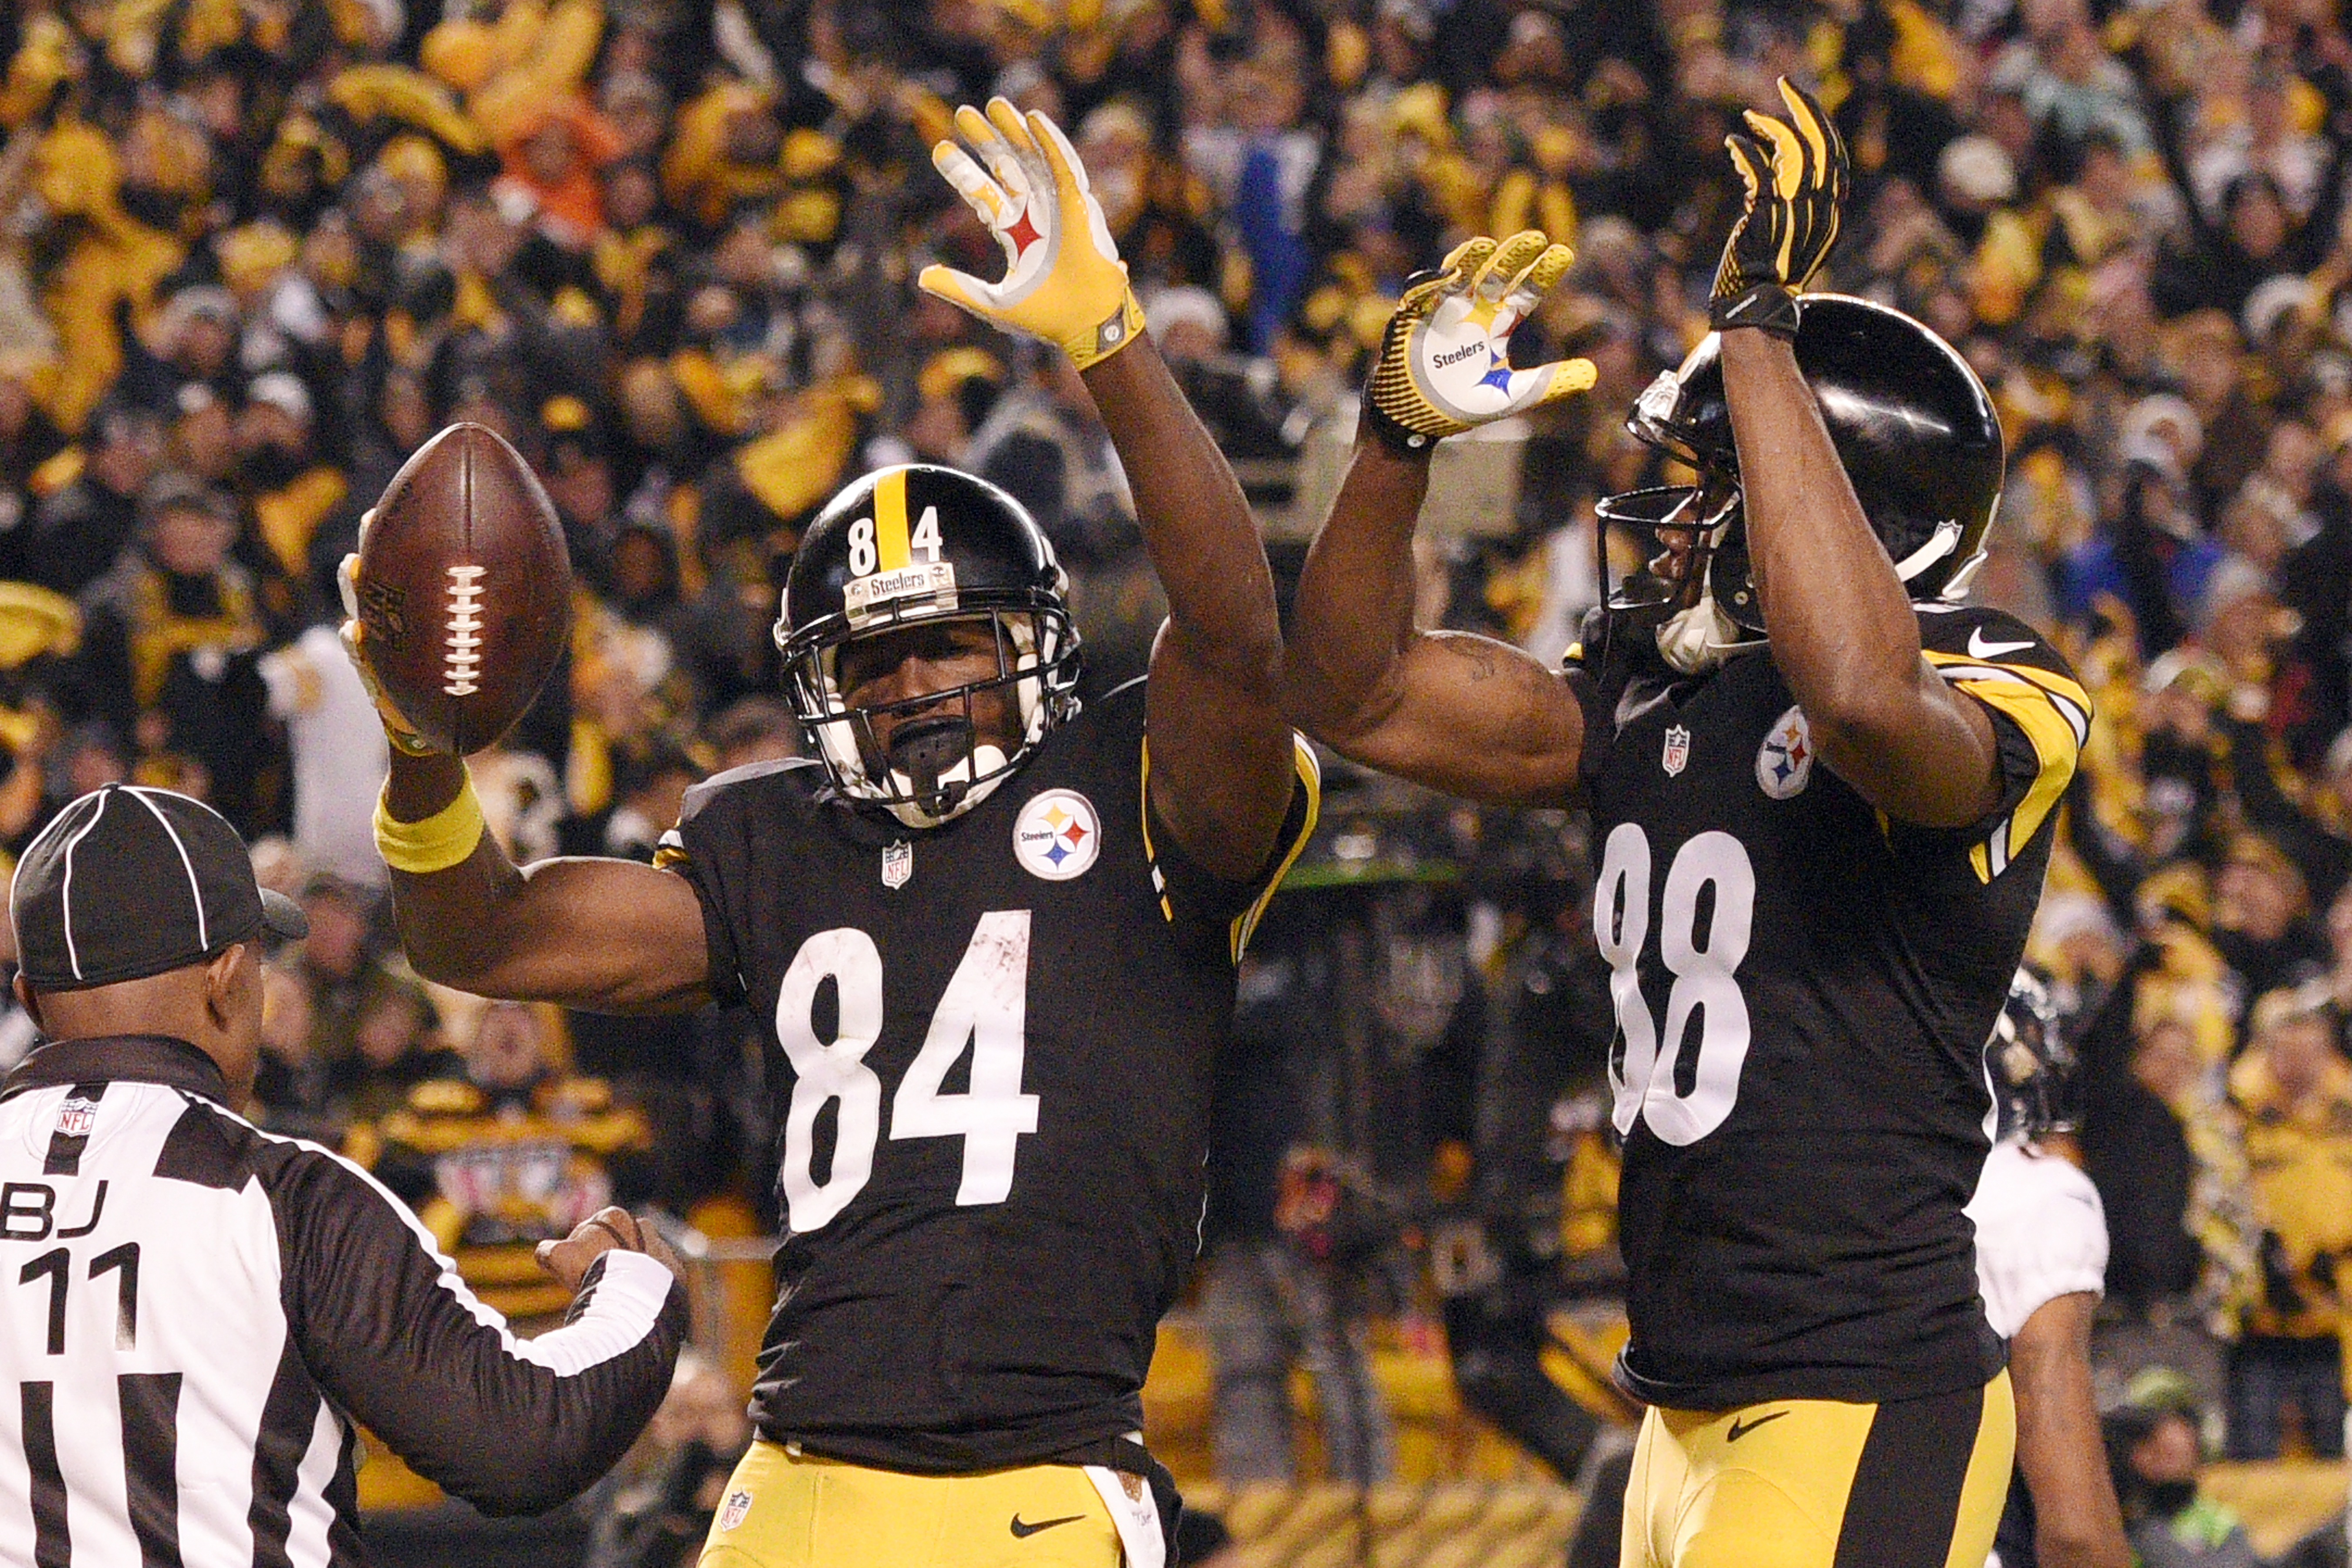 Pittsburgh Steelers wide receiver Antonio Brown (84) celebrates his touchdown with Darrius Heyward-Bey (88) during the second half of an NFL football game in Pittsburgh, Sunday, Dec. 20, 2015. (AP Photo/Don Wright)